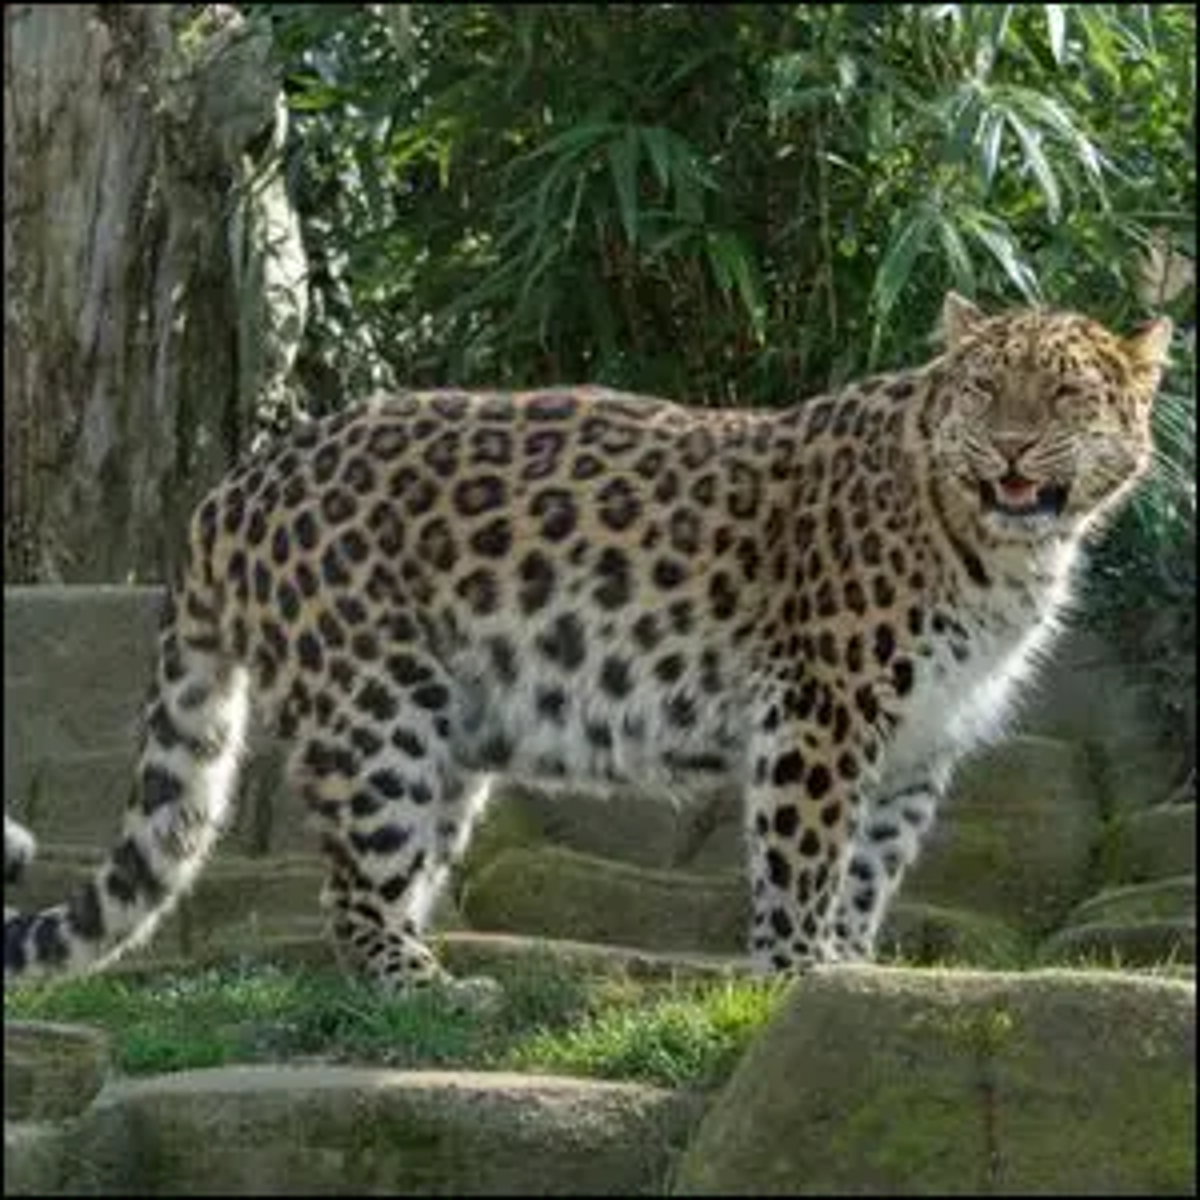 A captive Amur leopard at the Colchester Zoo in England.